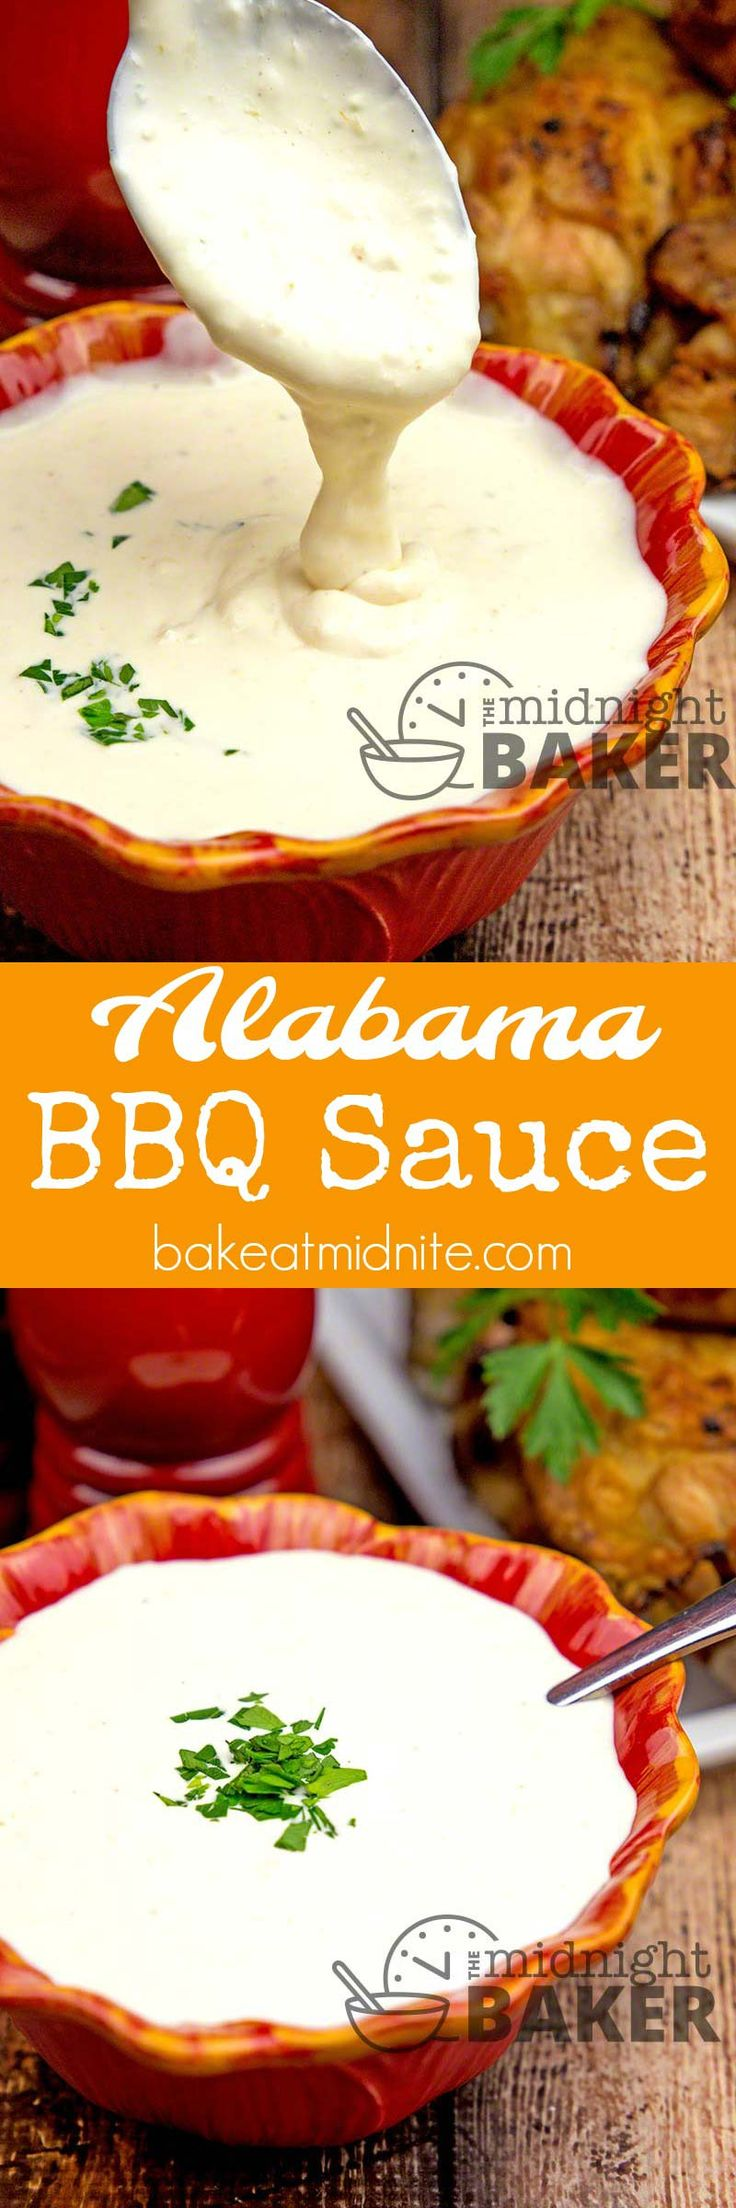 Great white BBQ sauce by way of Alabama.